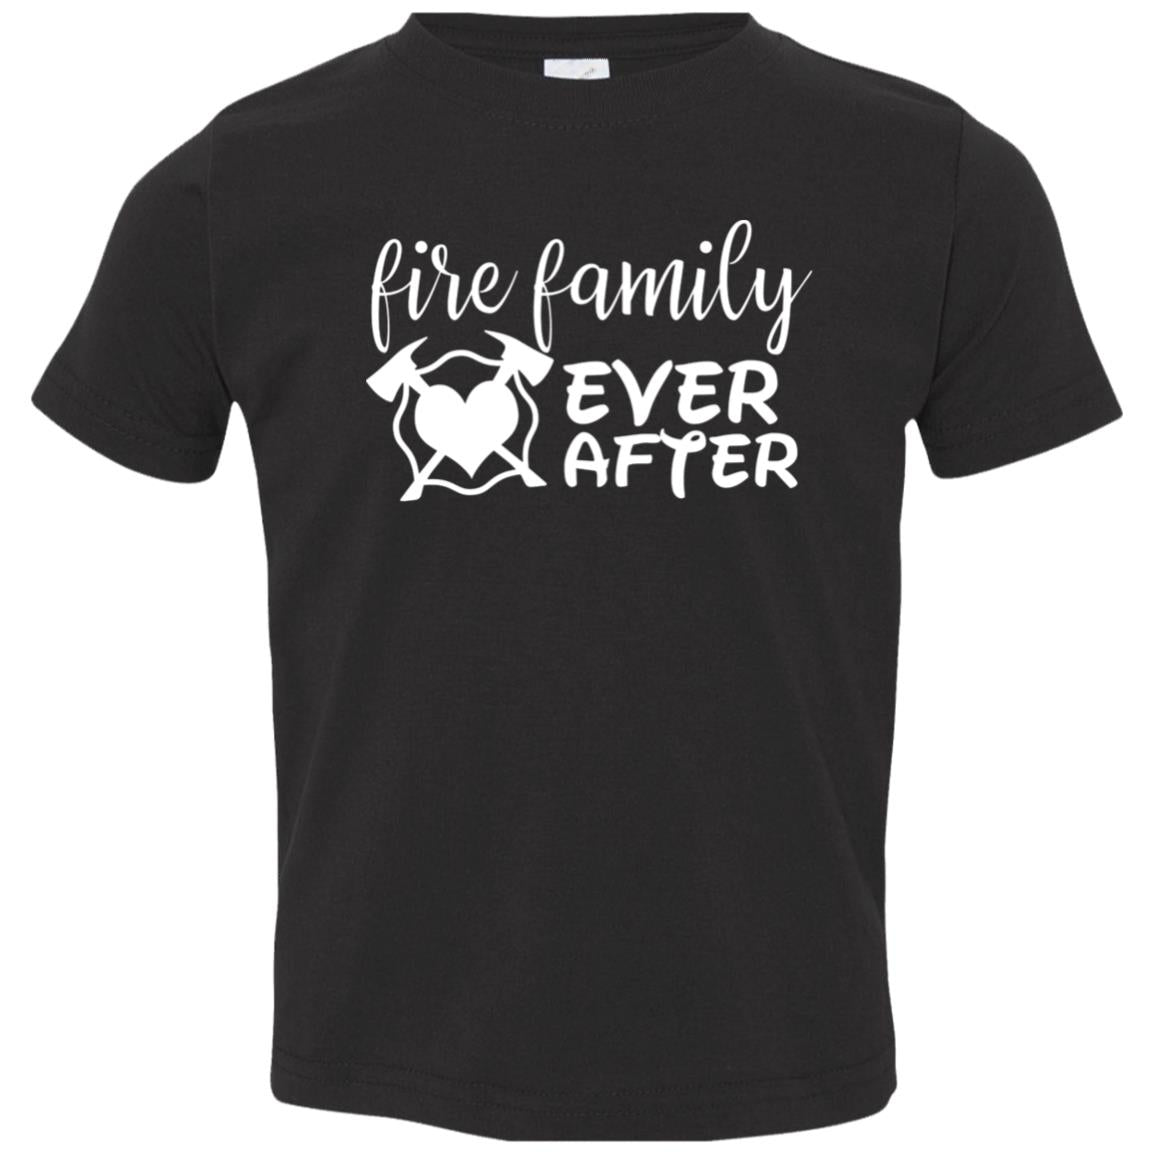 Fire Family Ever After Toddler Jersey T-Shirt